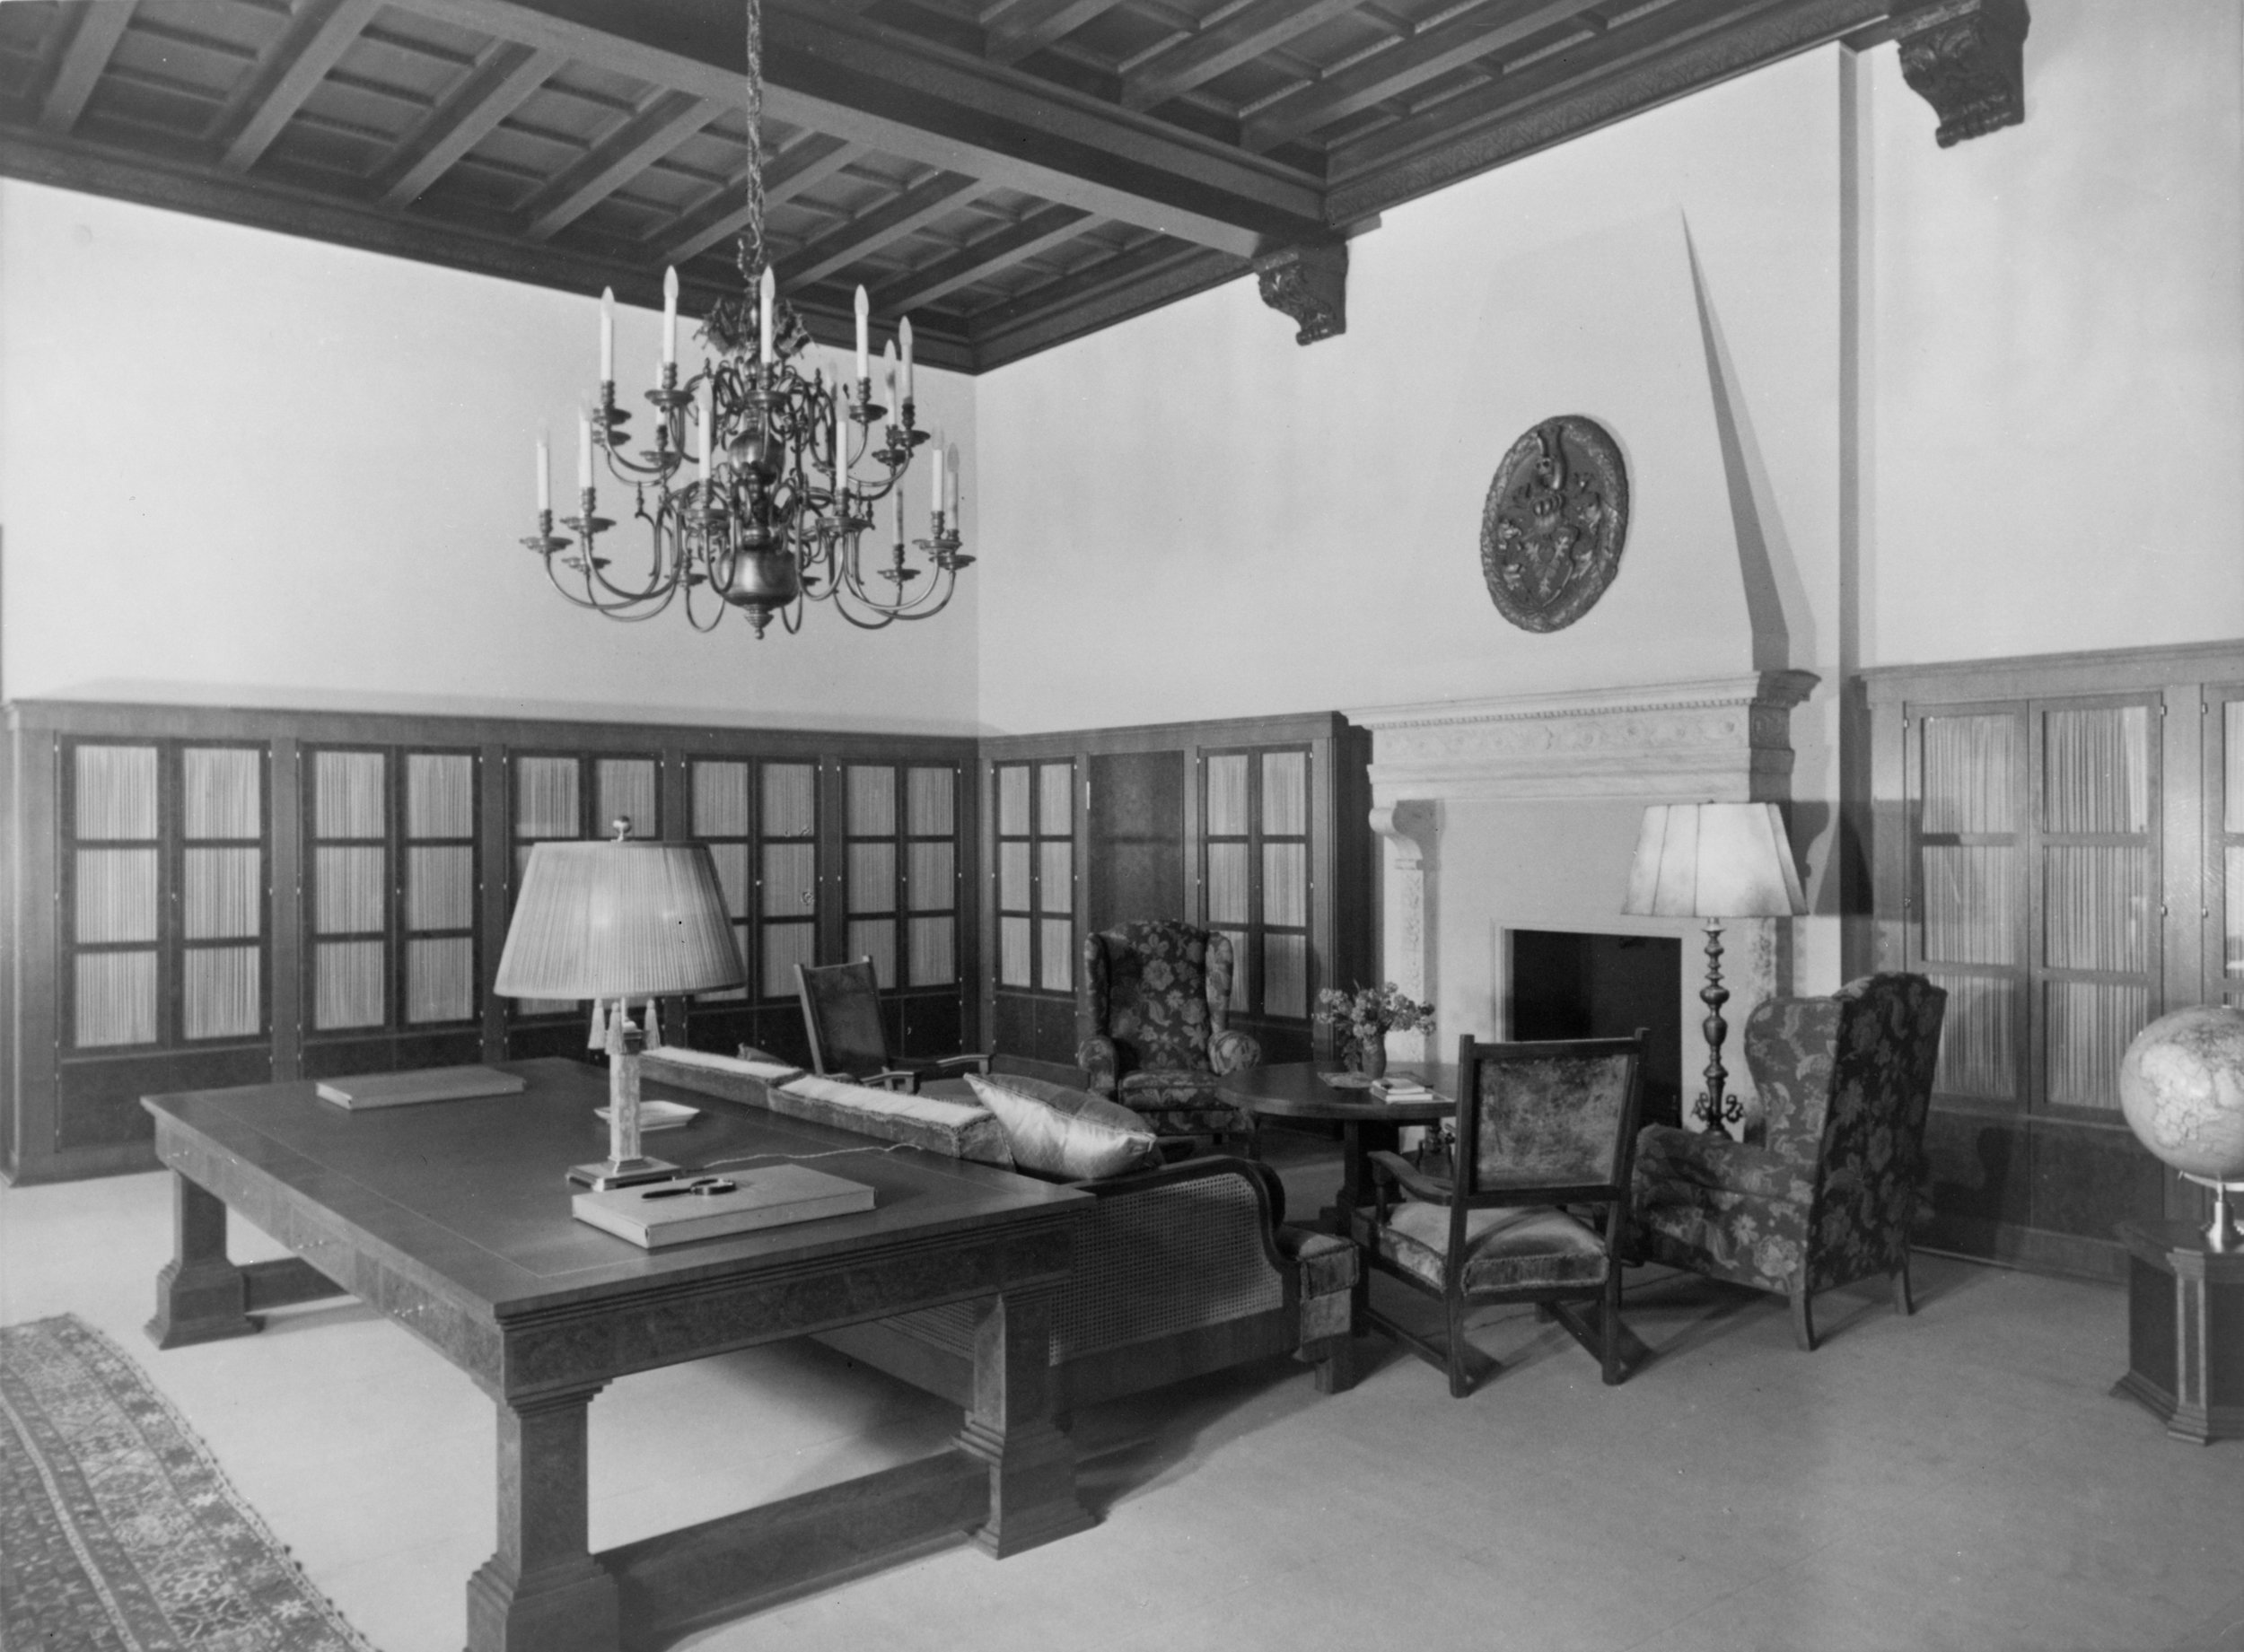 Library on the second floor of the Old Chancellery in Berlin after the renovation by the Atelier Troost, c. 1934. Photograph by Heinrich Hoffman, Library of Congress